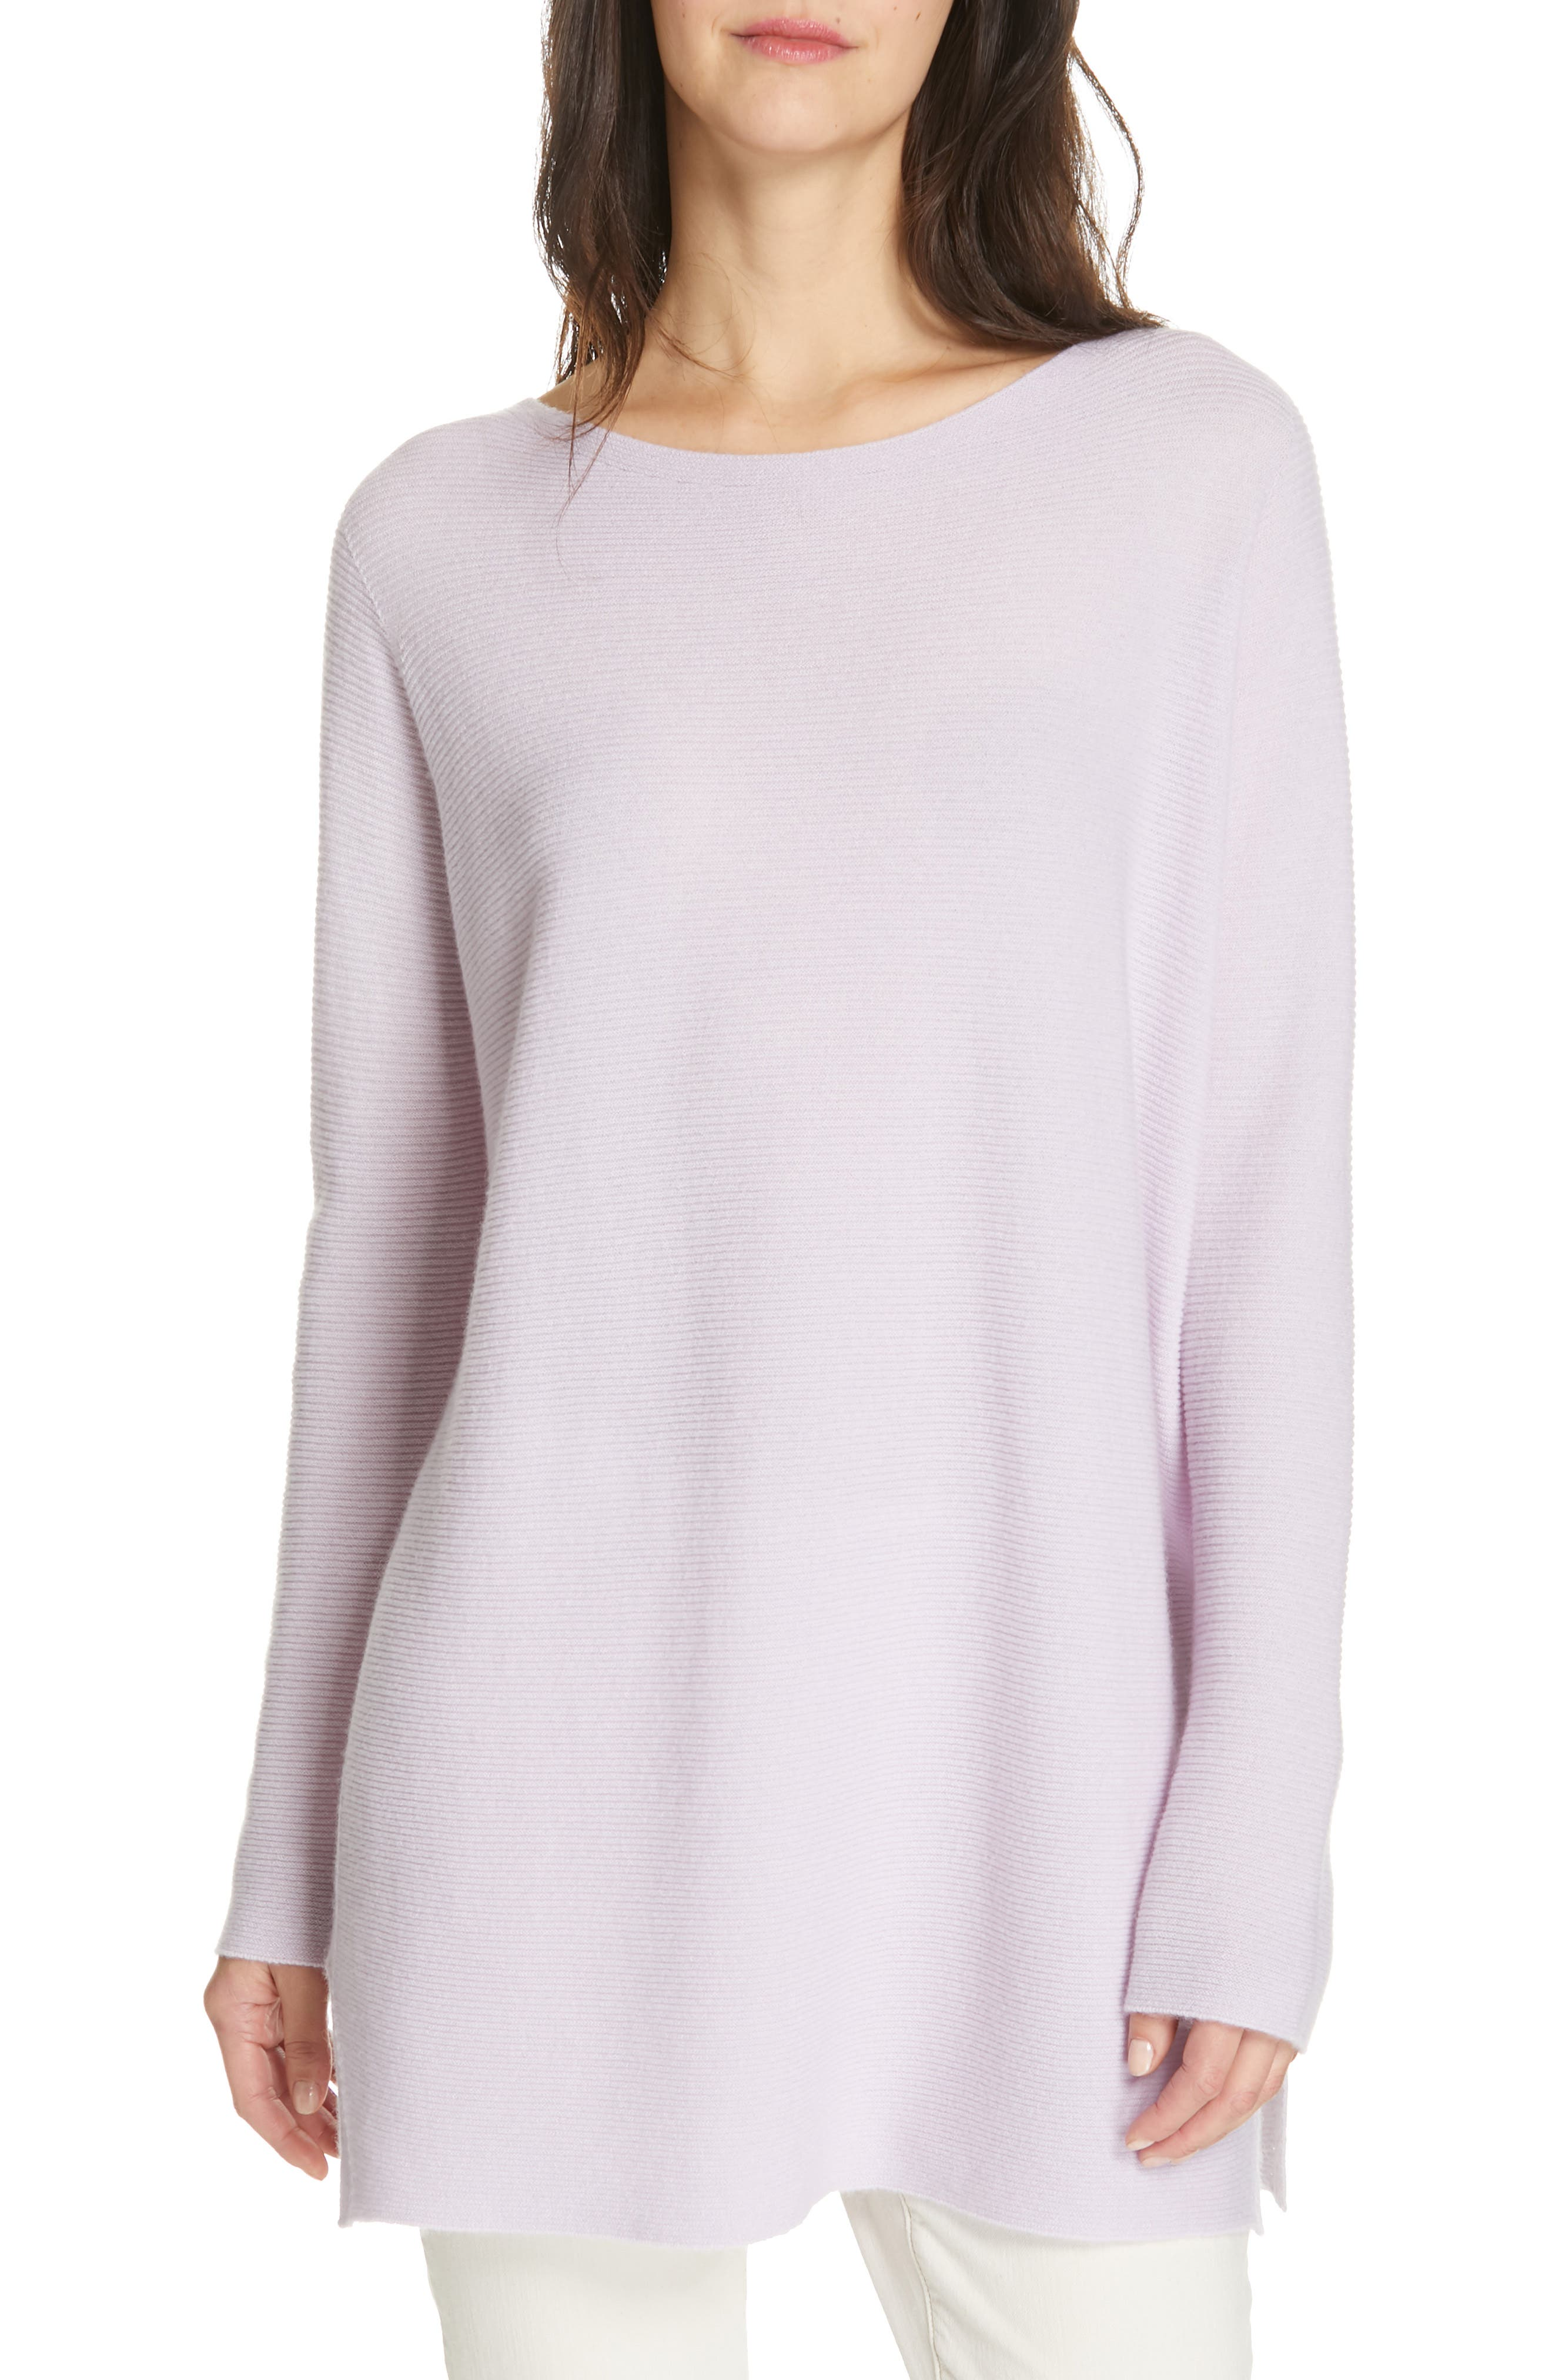 EILEEN FISHER Bateau Neck Cashmere Tunic Sweater, Main, color, MALLOW